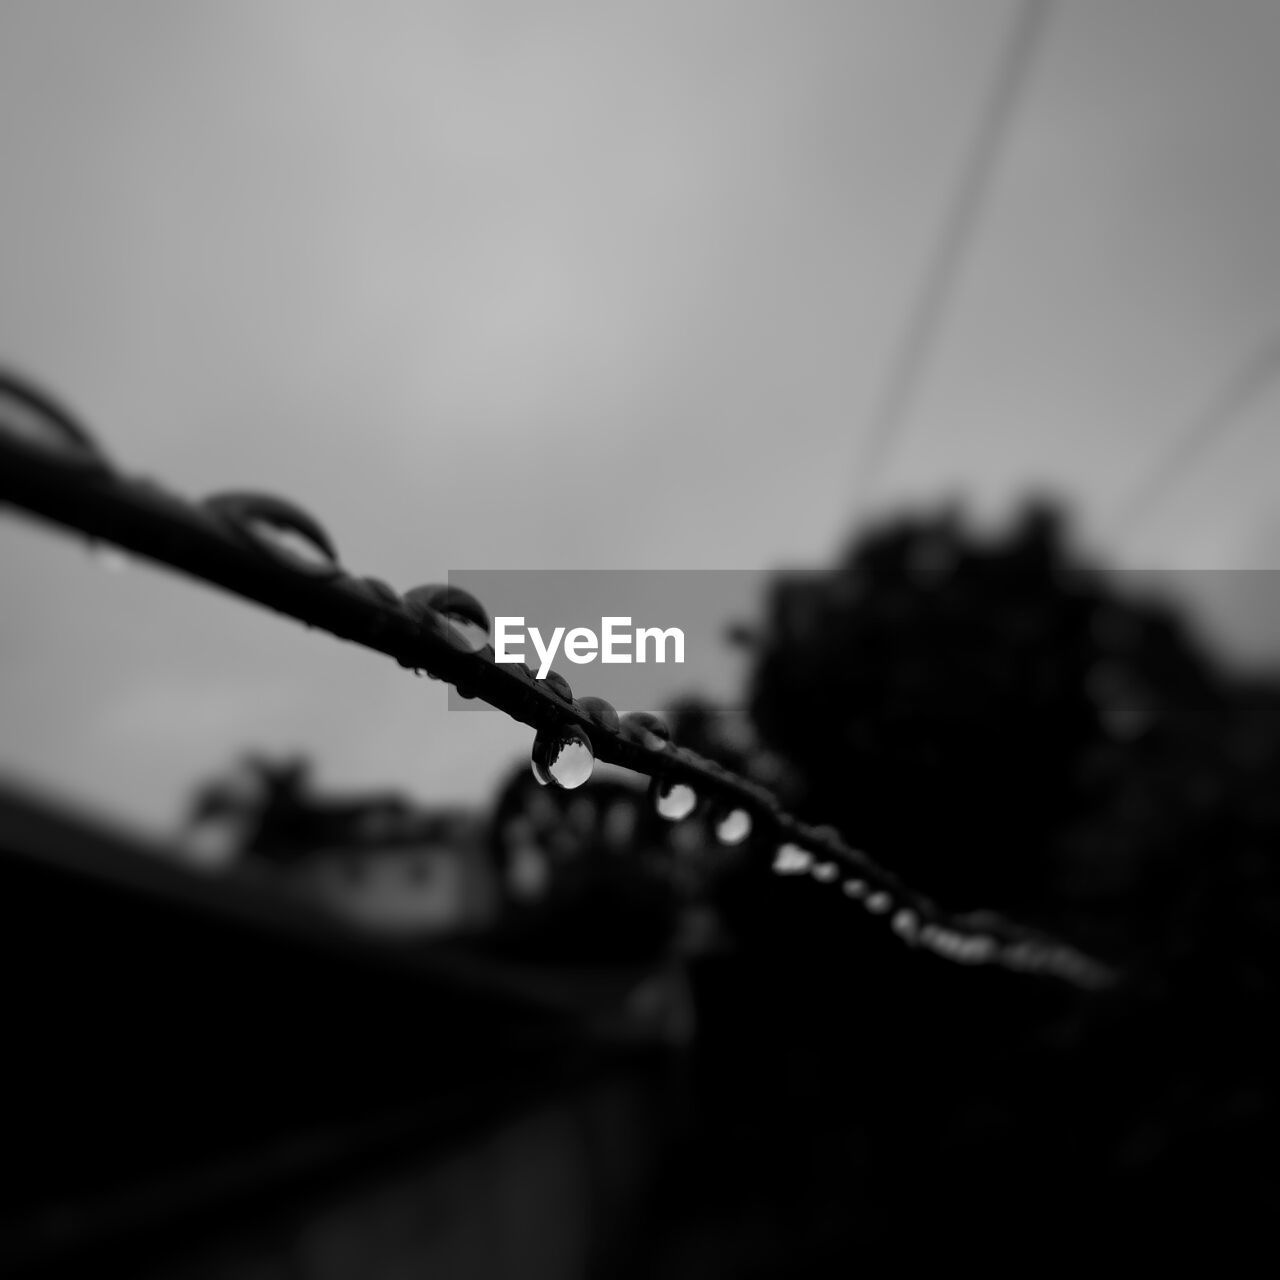 close-up, selective focus, plant, no people, drop, nature, focus on foreground, growth, water, wet, outdoors, safety, day, metal, fence, protection, barbed wire, wire, security, raindrop, rain, dew